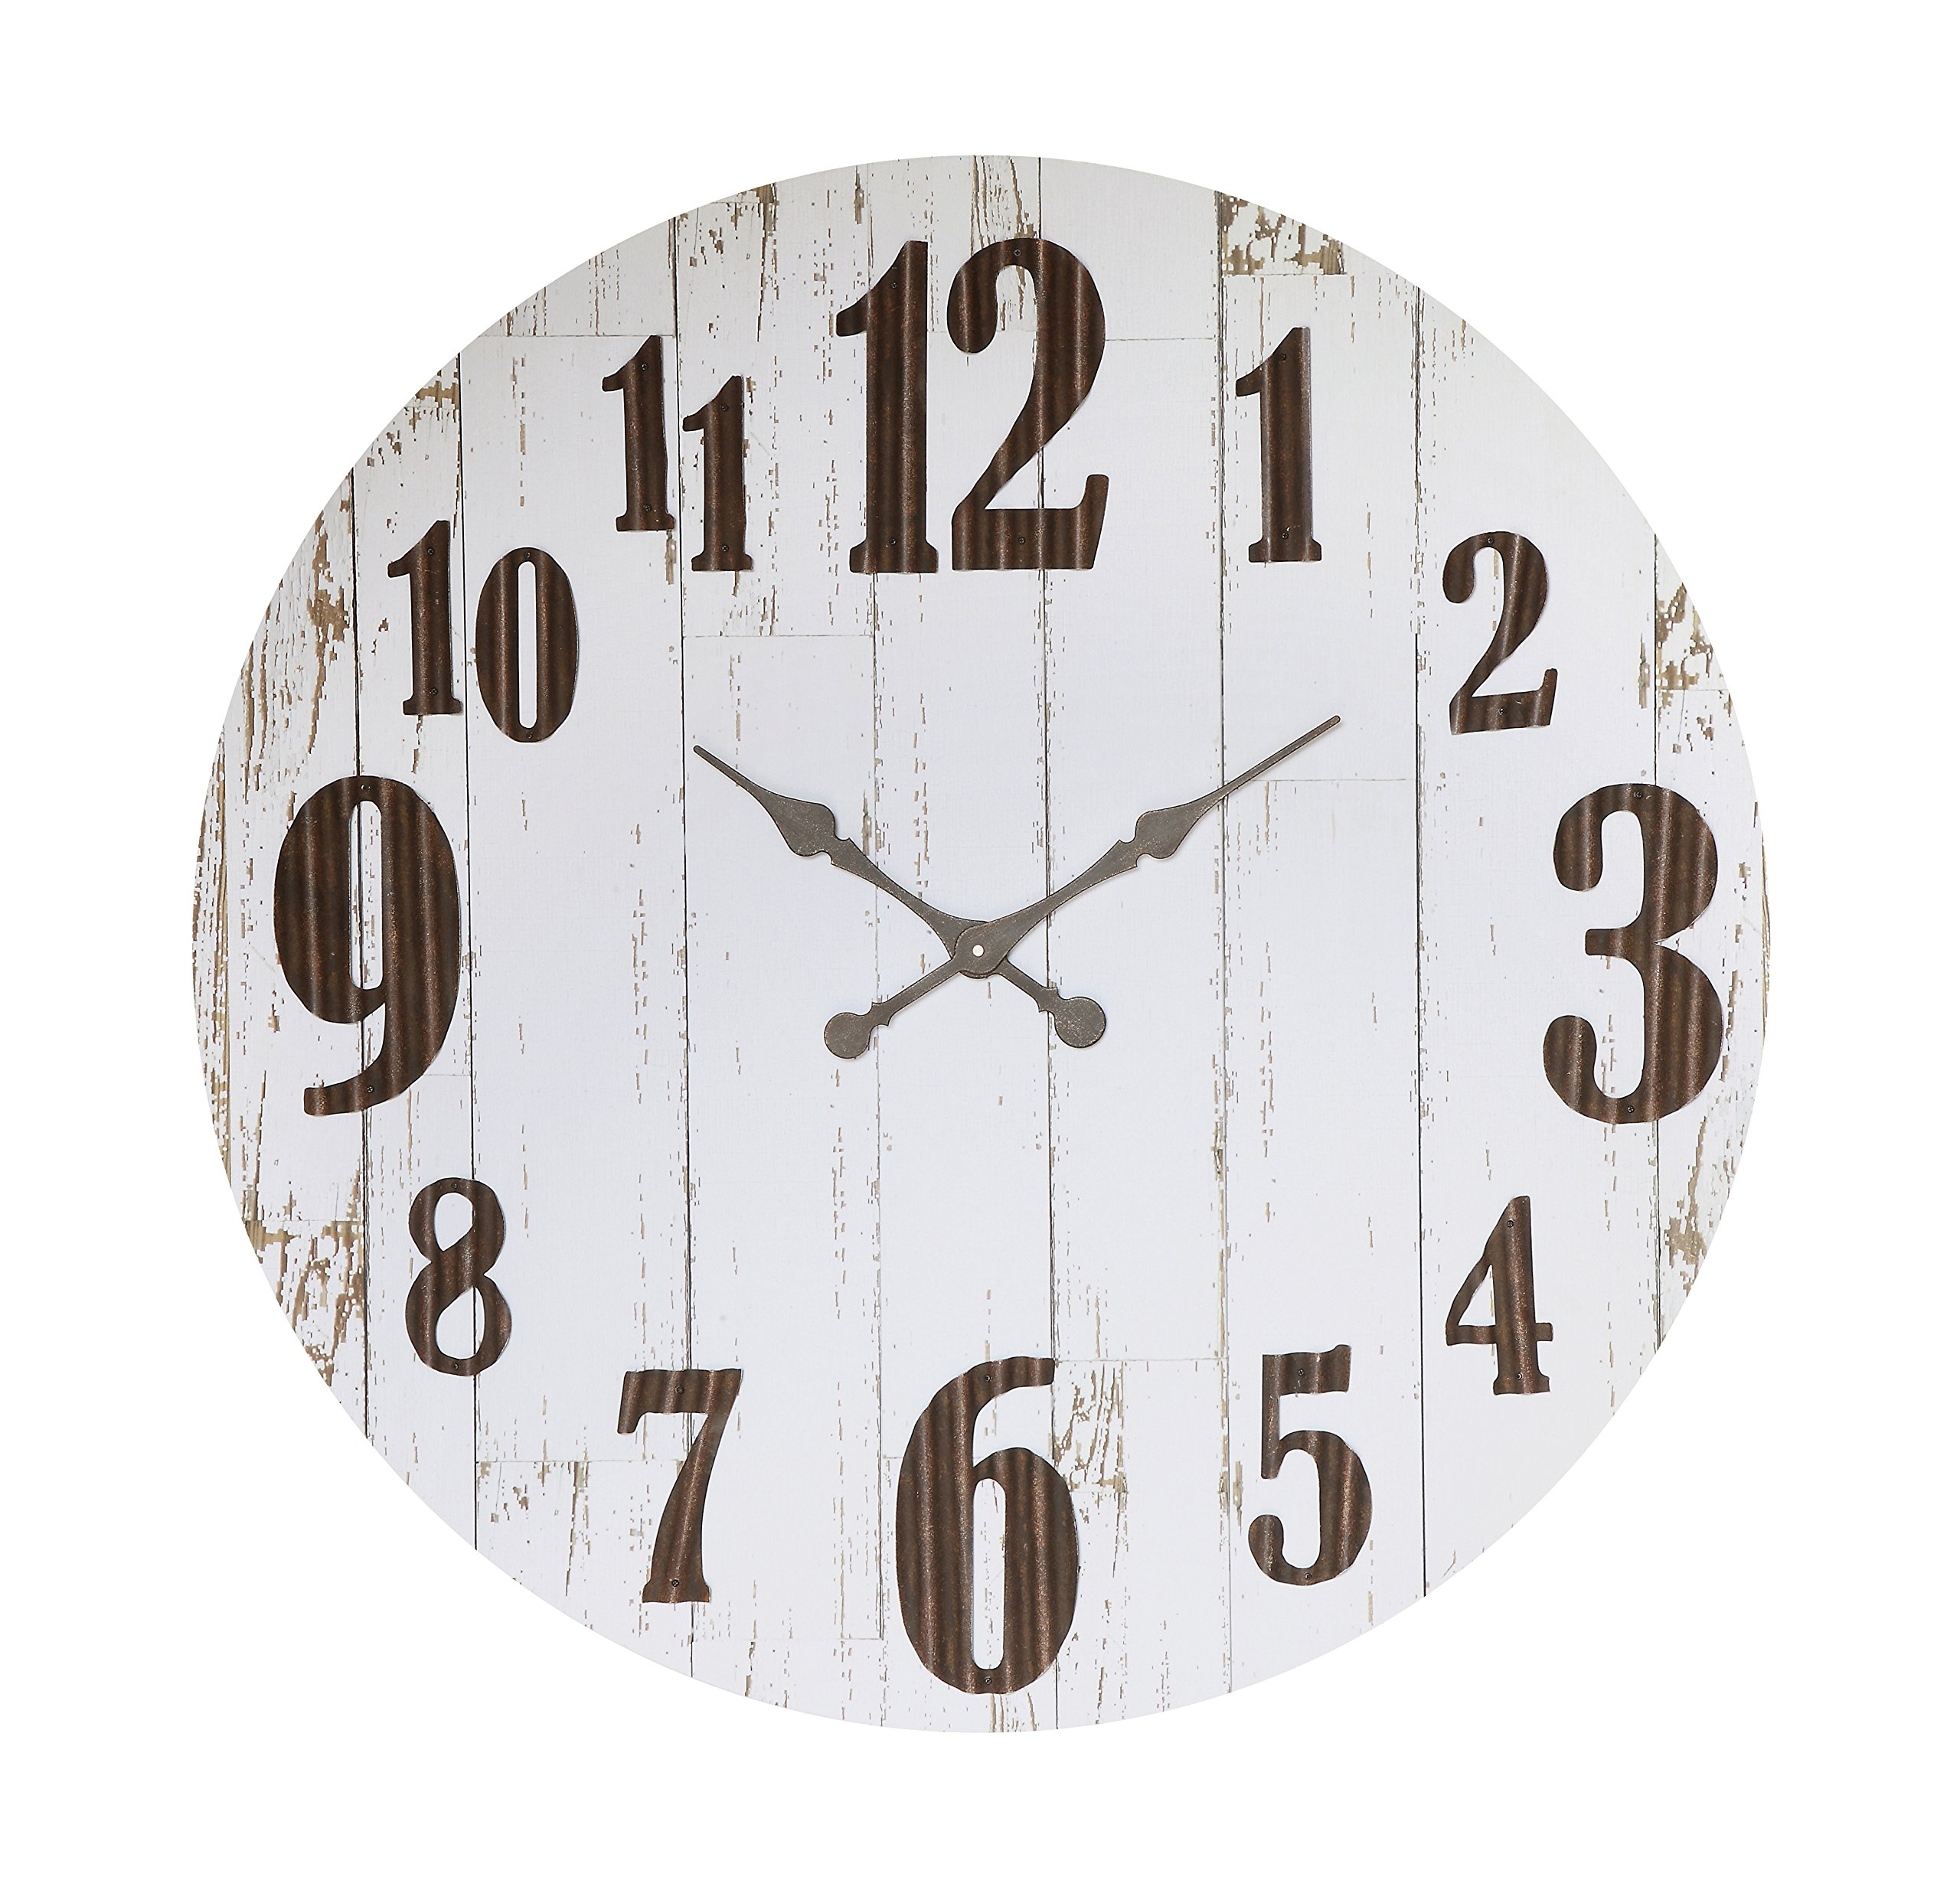 Black and White Round Wood and Metal Wall Clock